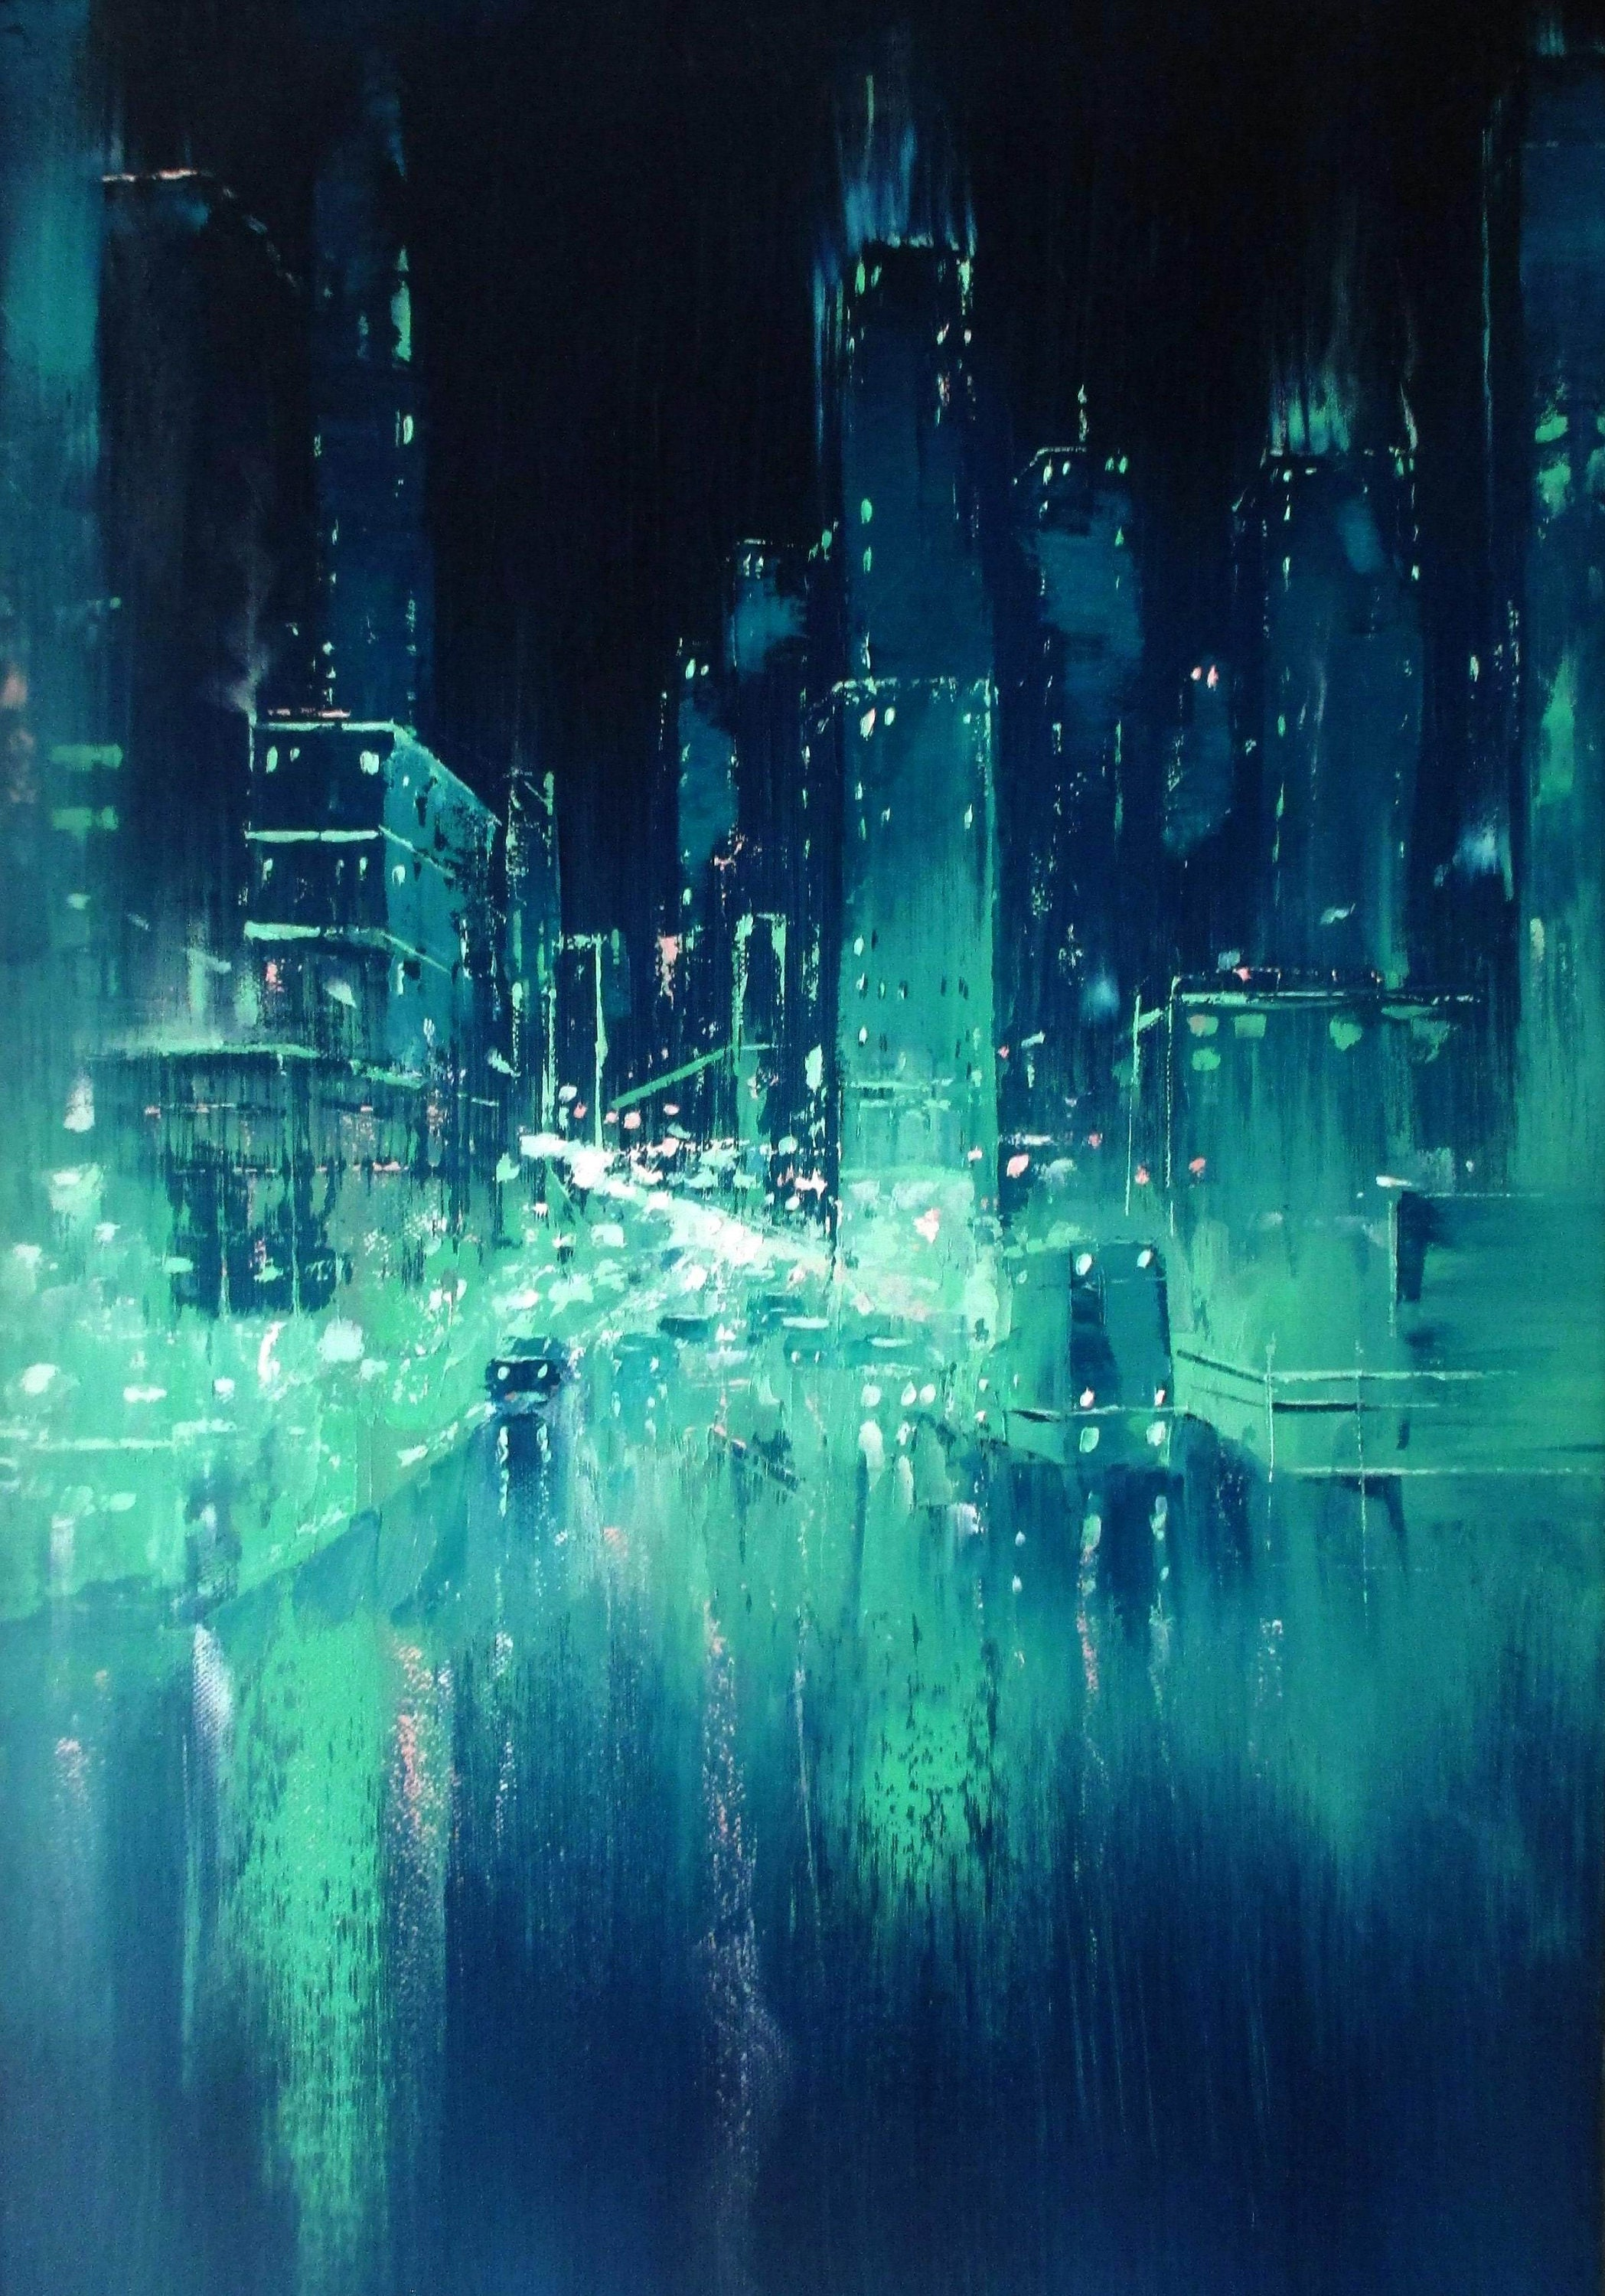 Oil Painting Original Painting on Canvas / Cyberpunk Synthwave Vaporwave  Art, Turquoise Palette Knife Art /